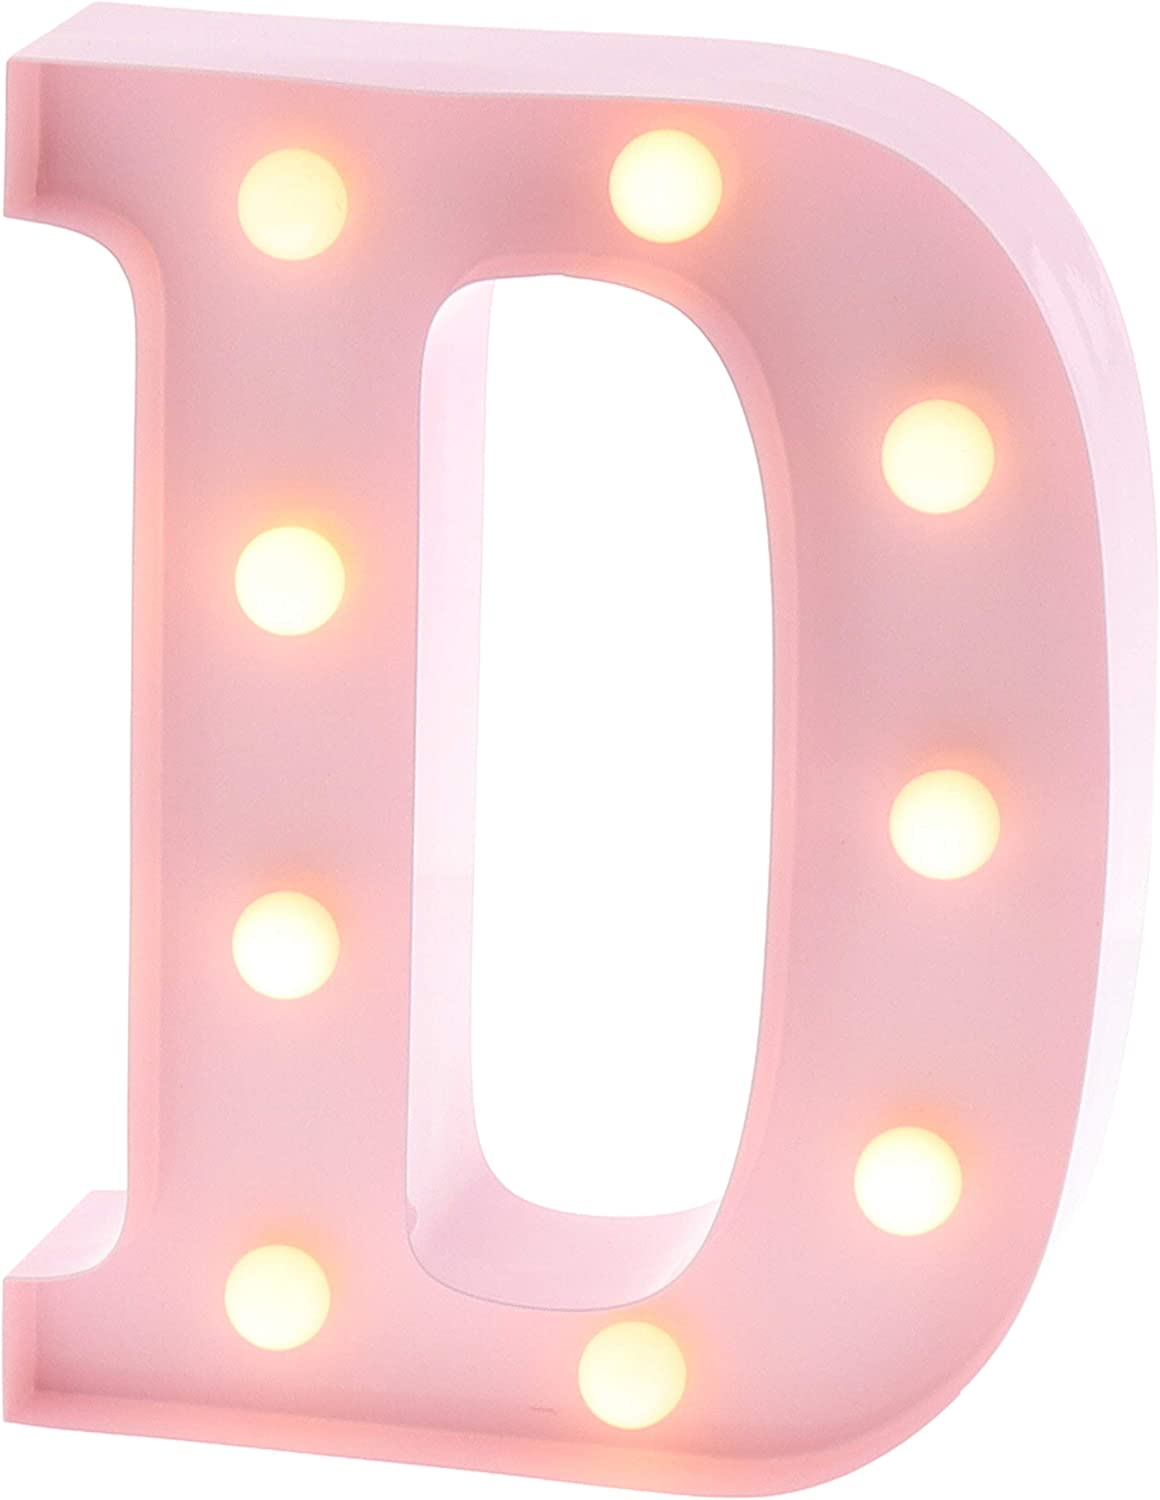 """Barnyard Designs Metal Marquee Letter D Light Up Wall Initial Nursery Letter, Home and Event Decoration 9"""" (Baby Pink)"""